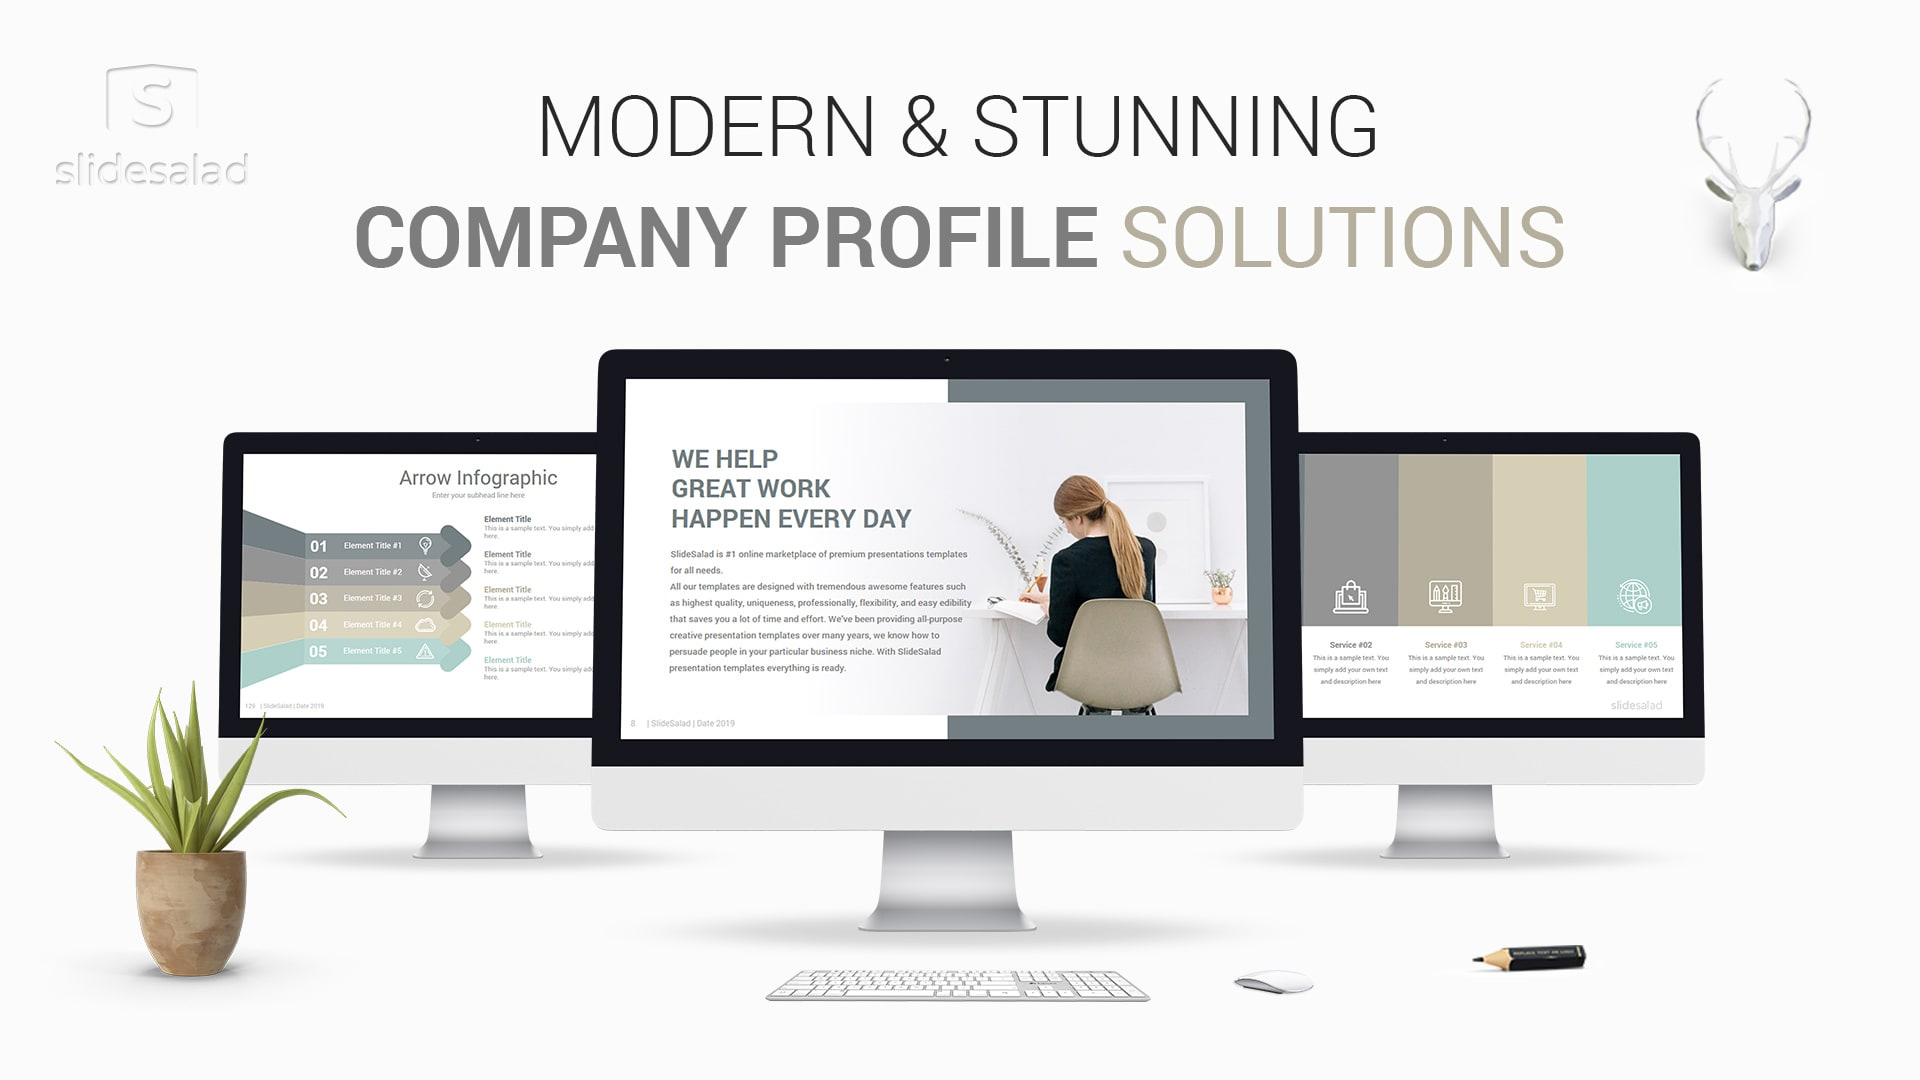 Modern Company Profile PowerPoint Template Designs - Create Clean Business Profiles Professionally